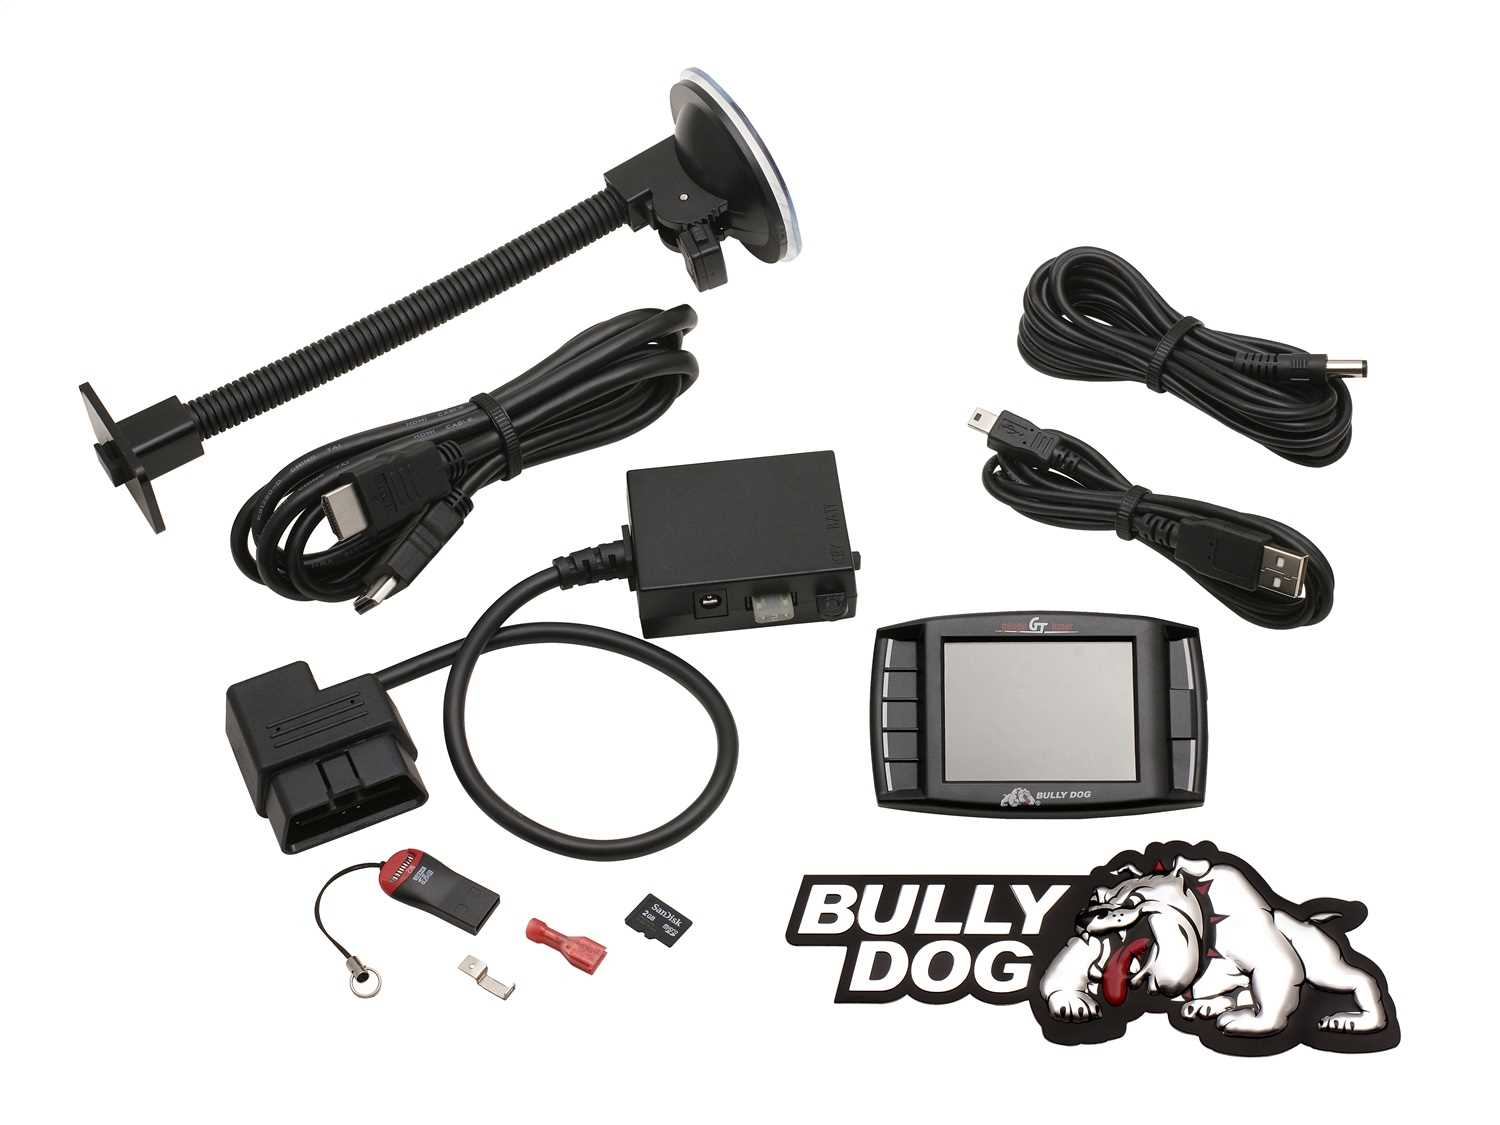 Bully Dog 40420 >> 40420 Bully Dog Triple Dog Gt Diesel Gauge Tuner 40420